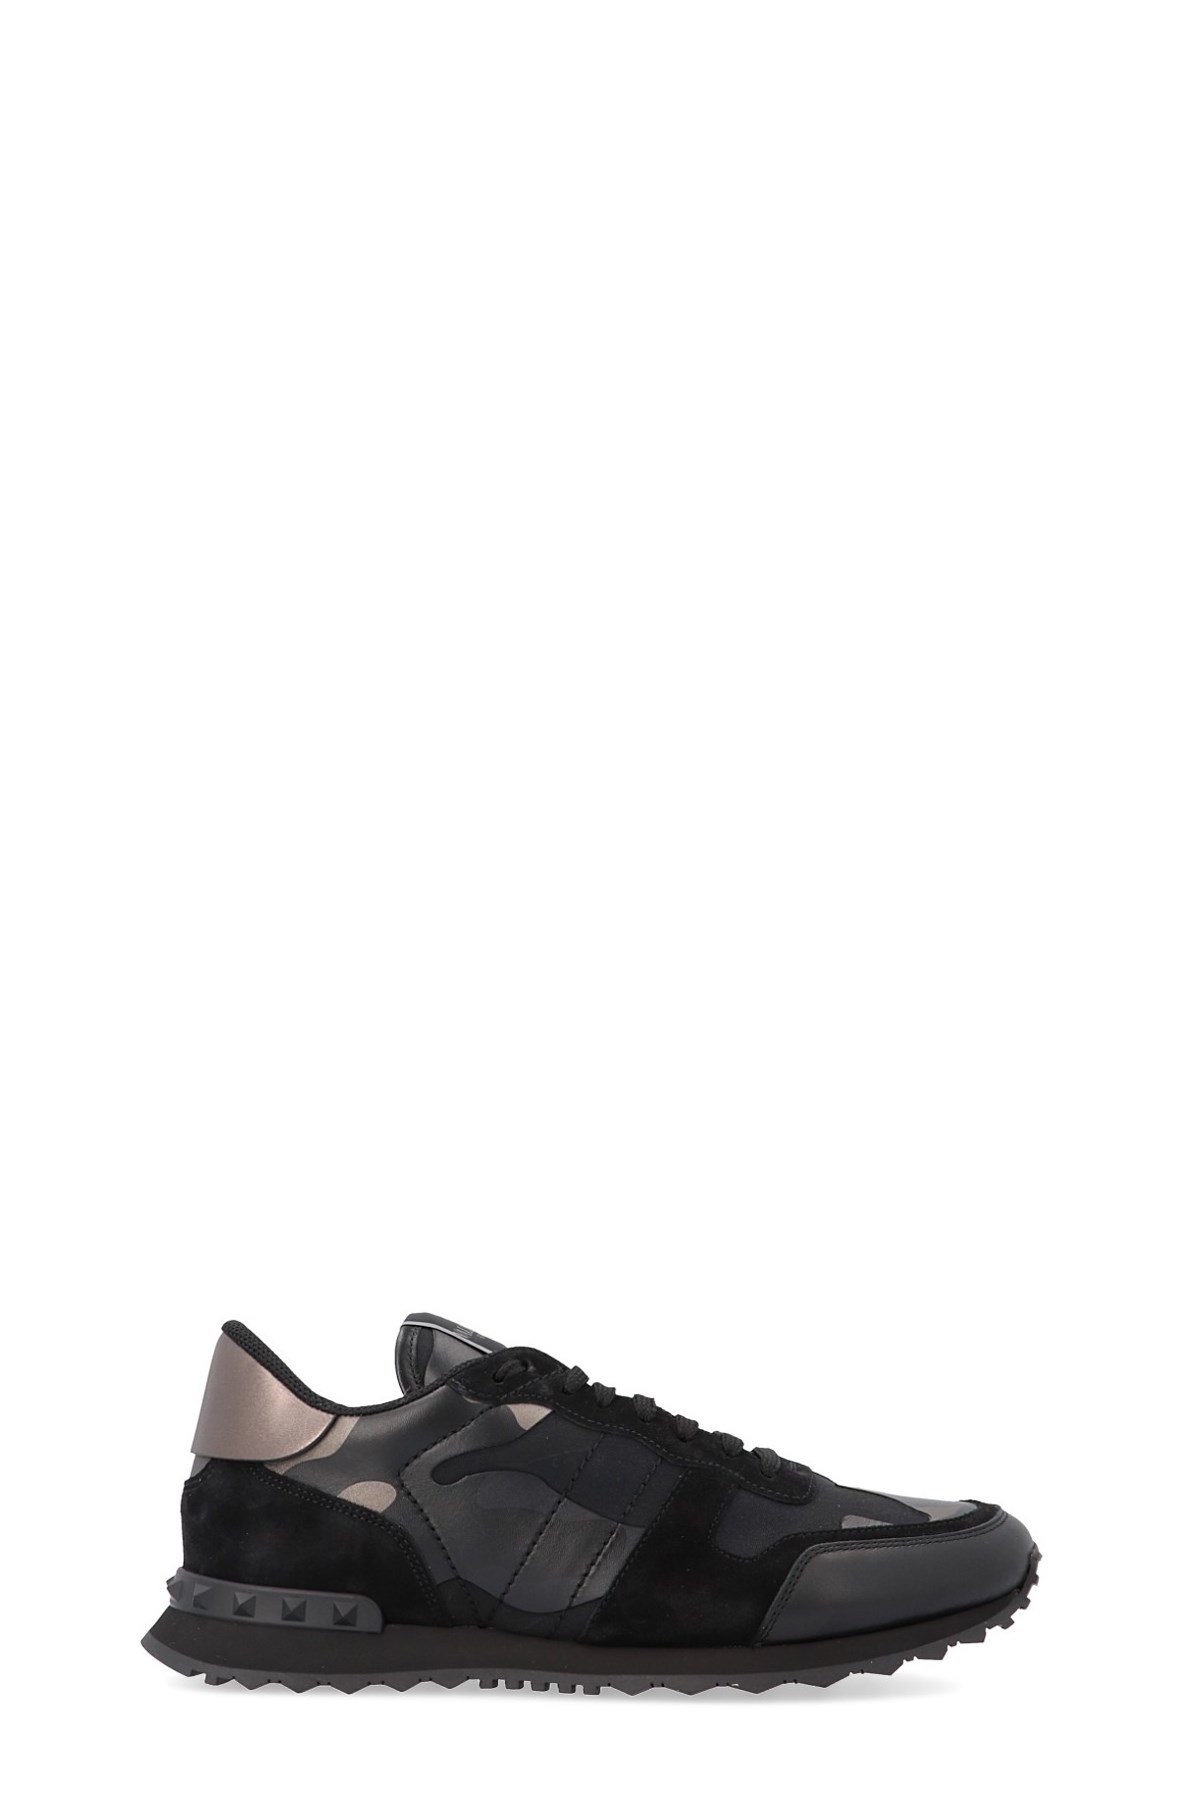 0c87dc00fcfe valentino garavani  Rockrunner  sneakers available on julian-fashion ...